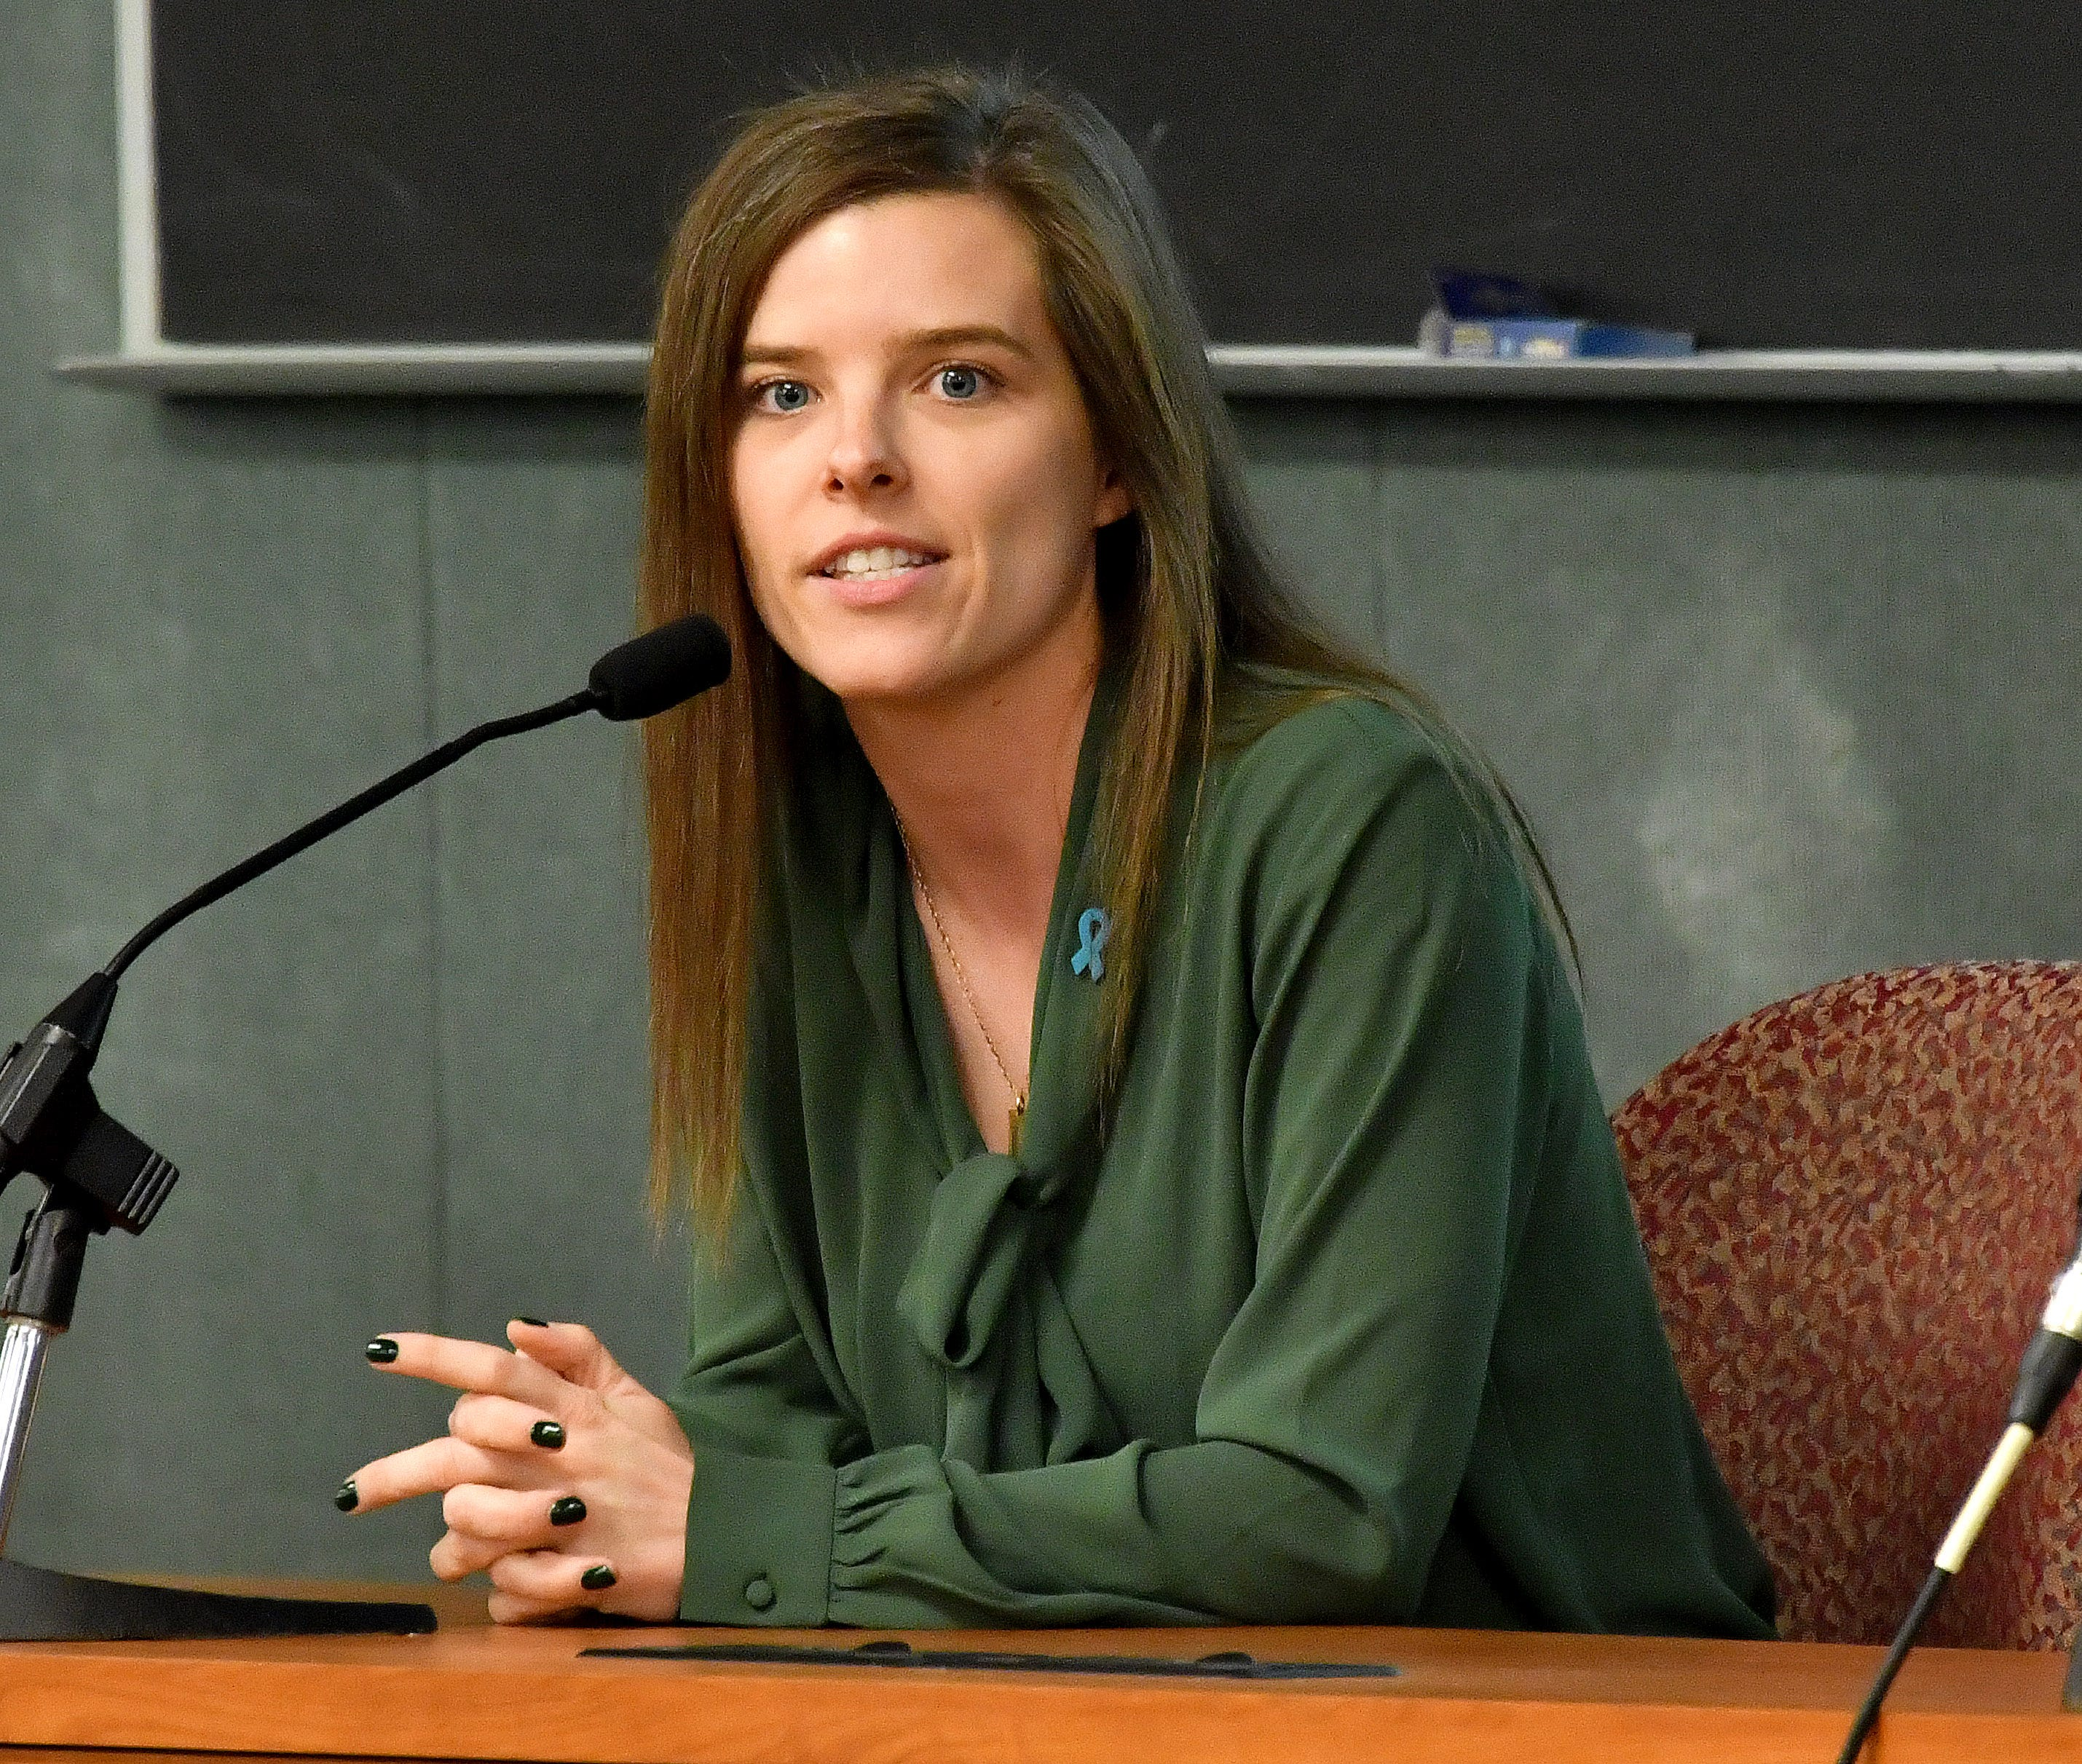 Kelly Tebay, who graduated from MSU about five years ago, is the youngest of the candidates for Michigan State University board of trustees.